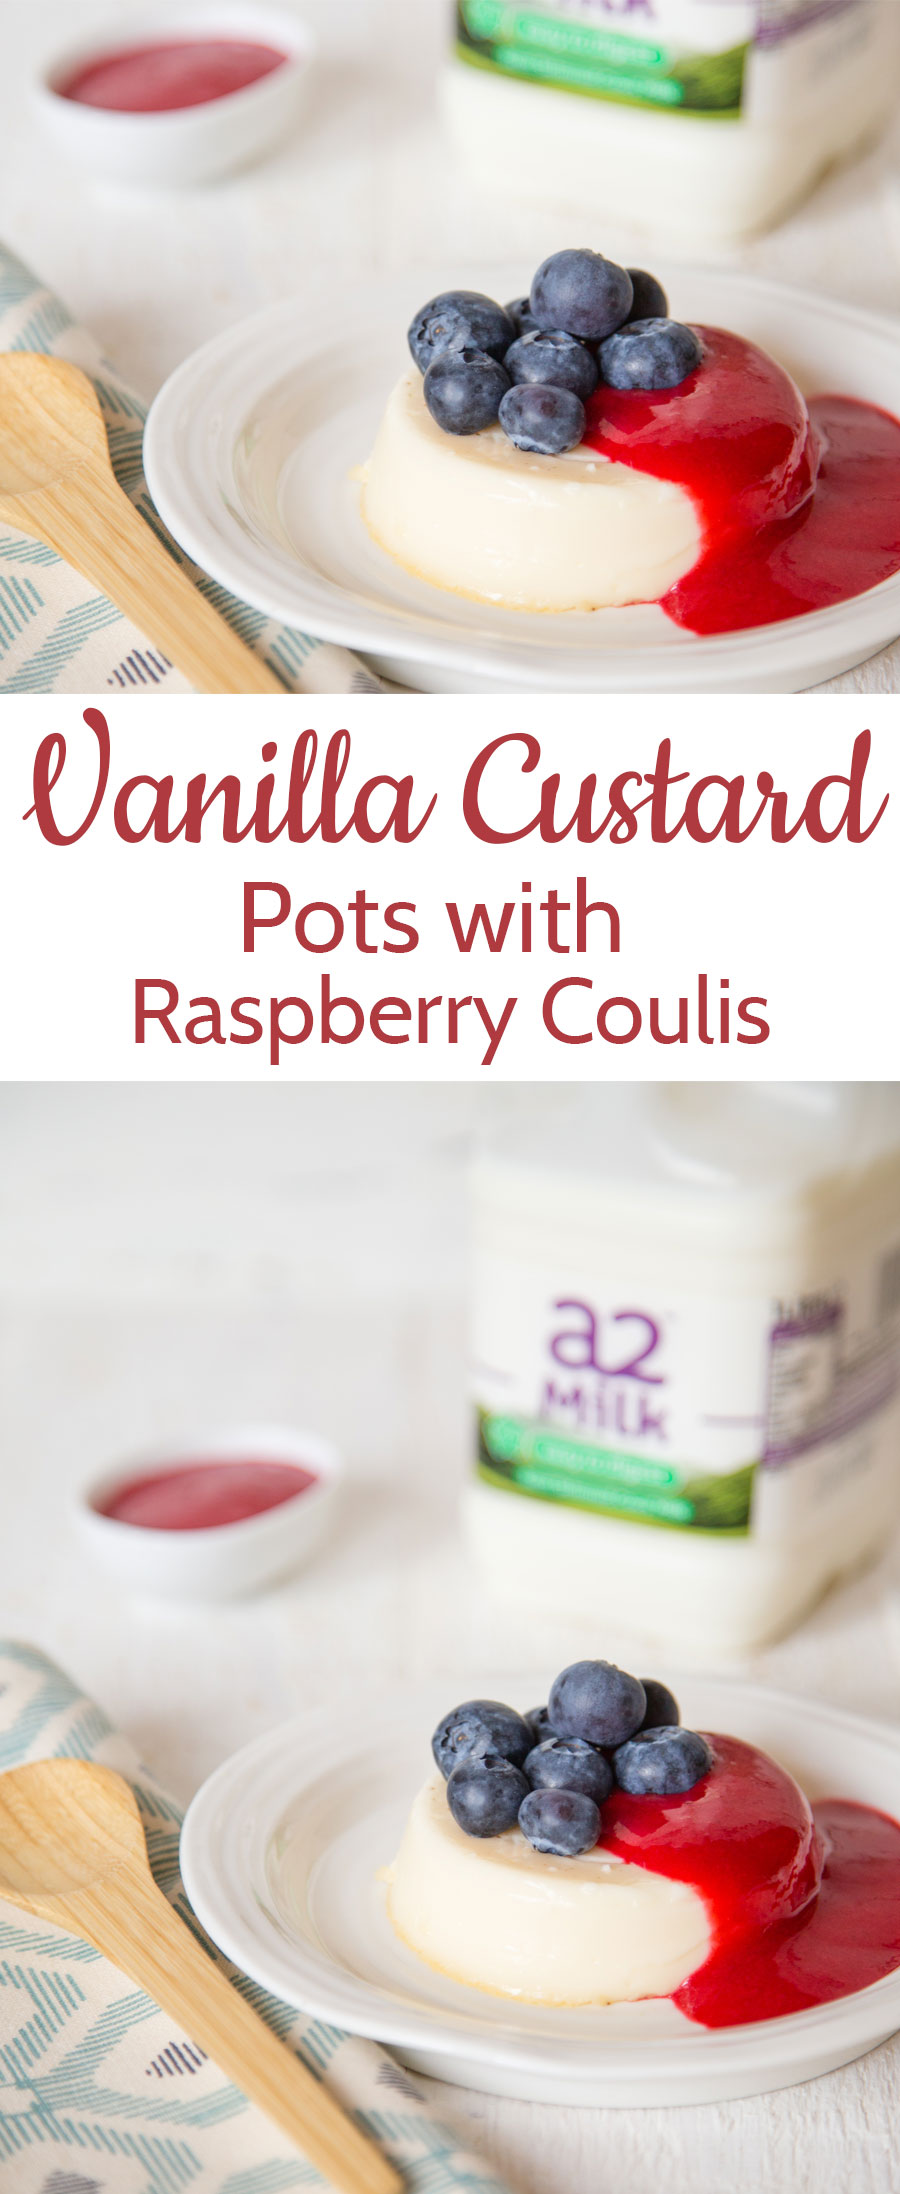 A super easy recipe for vanilla baked custards served with raspberry coulis